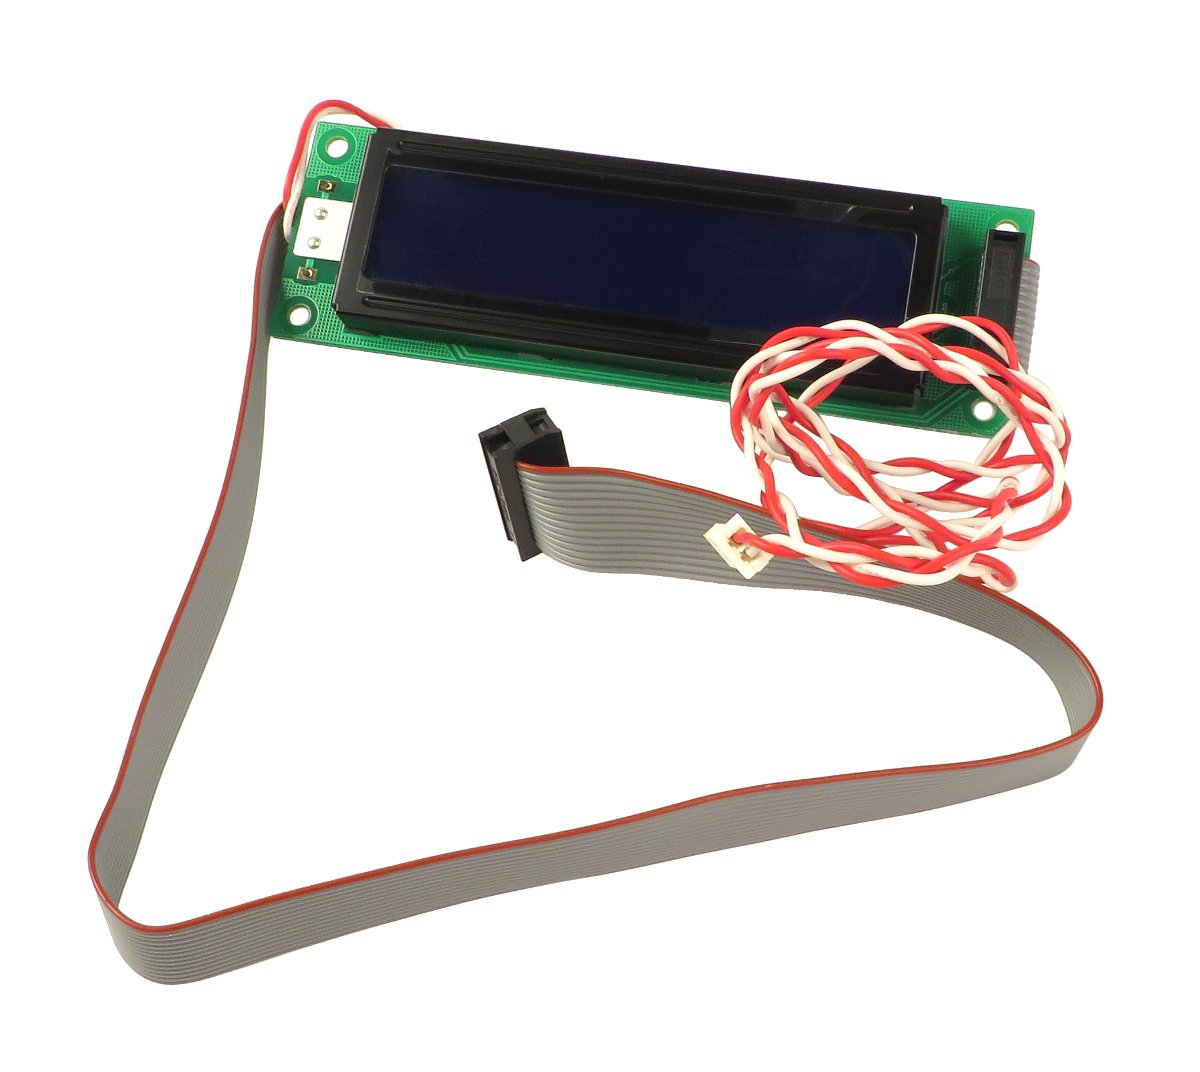 LCD Assembly for PC2, PC2X, and PC88